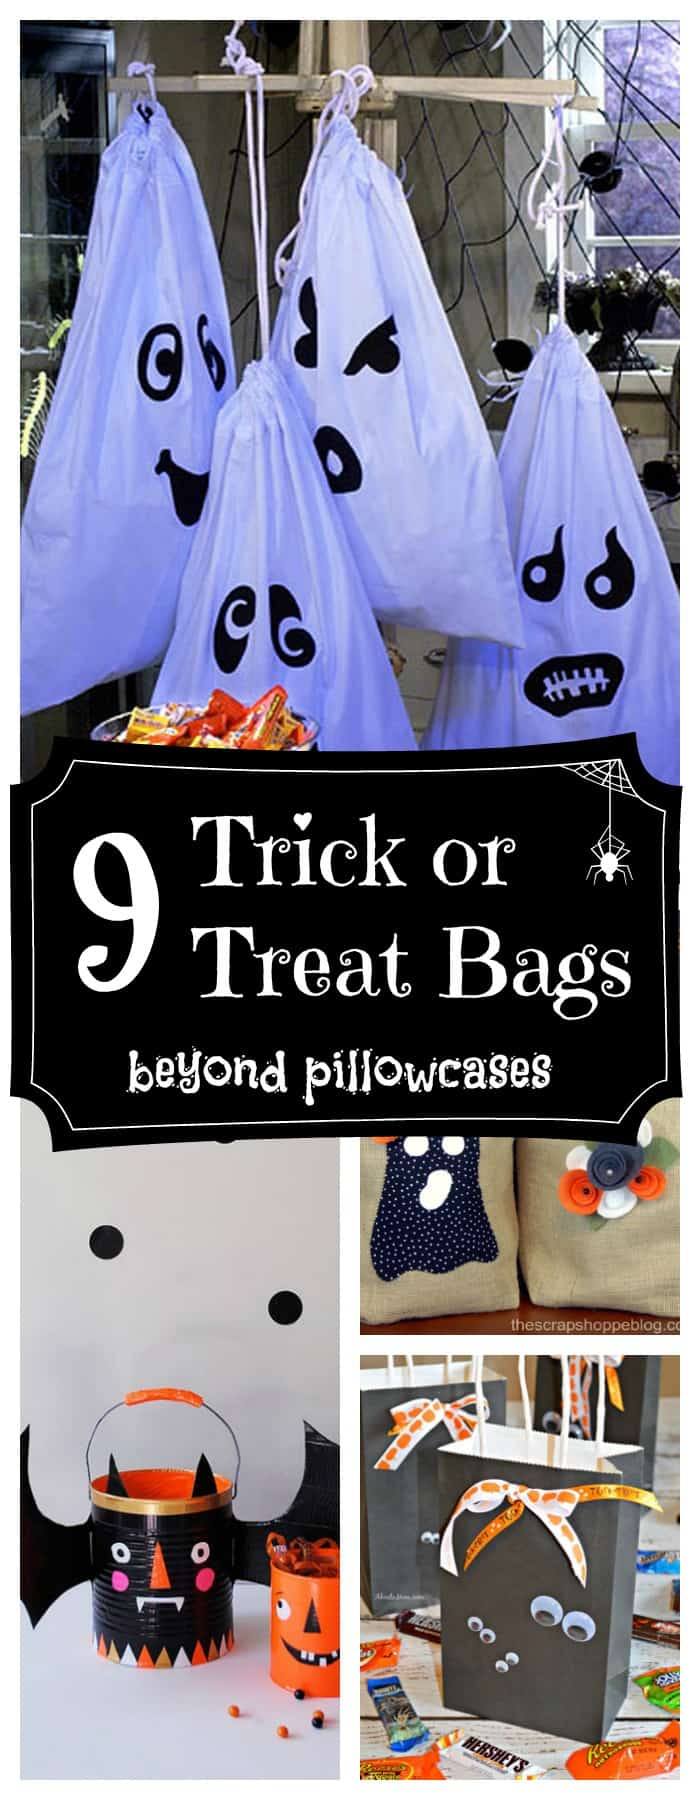 DIY Trick or treat bags - more than pillowcases